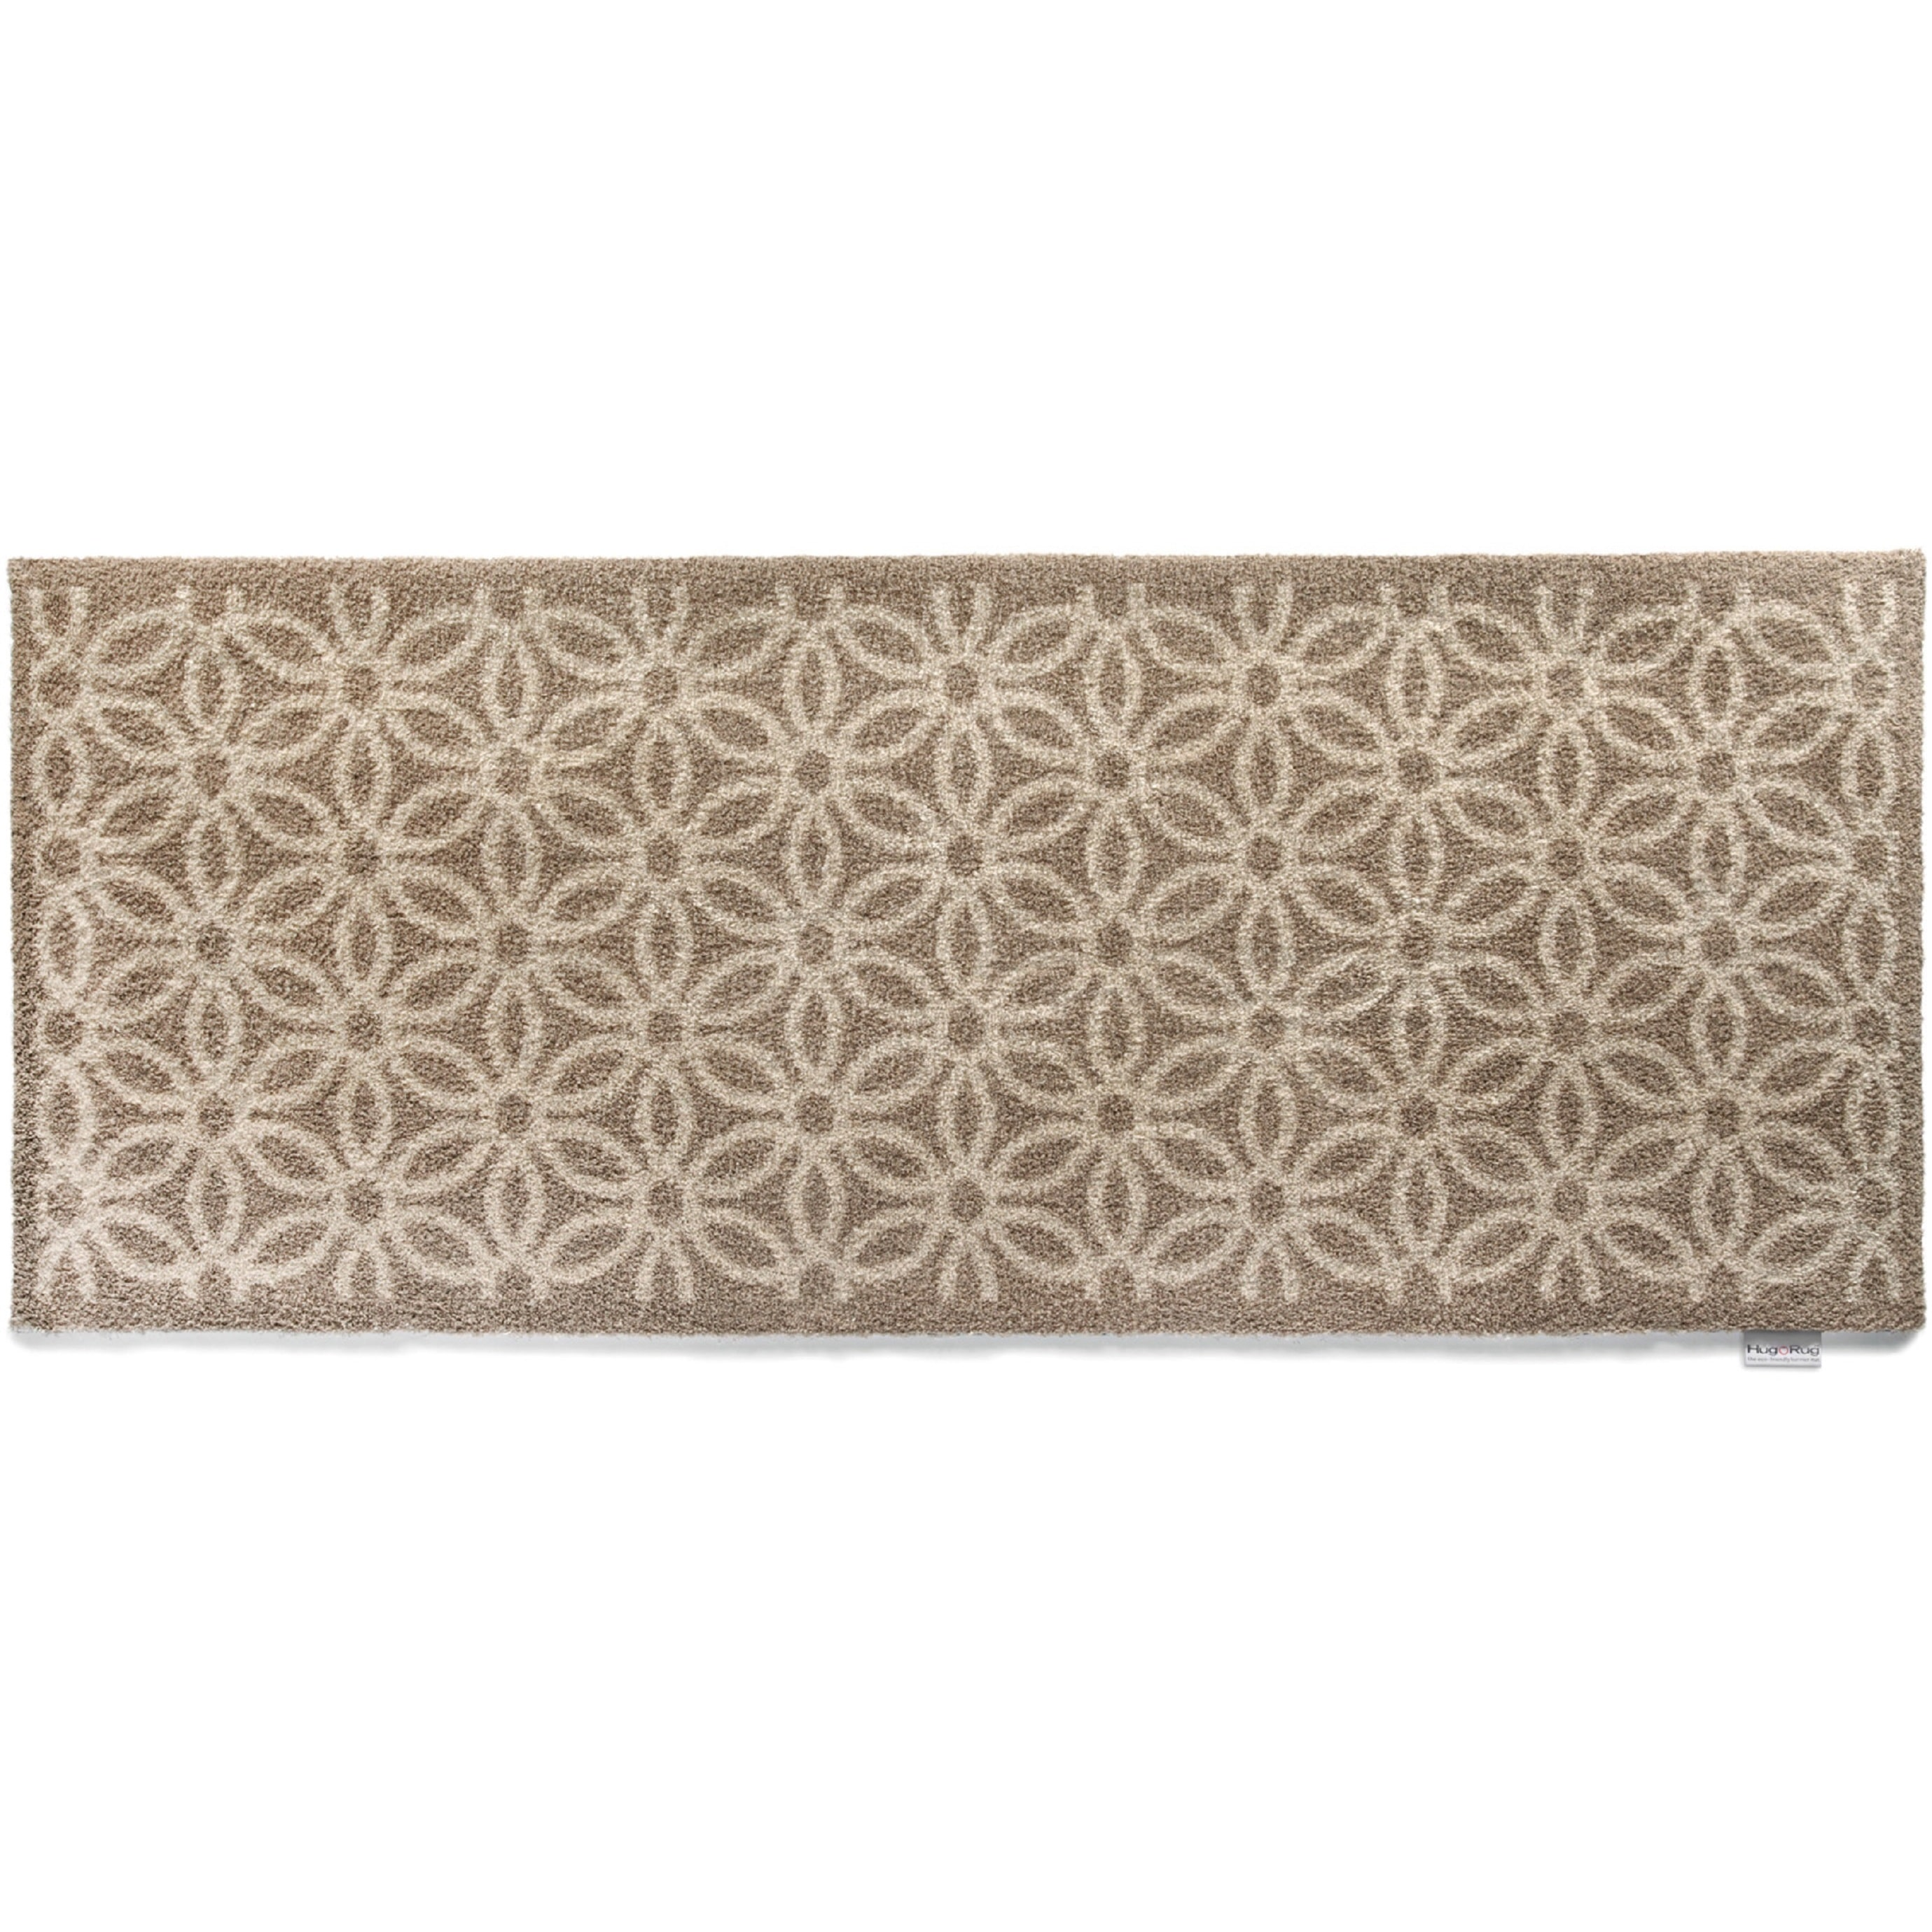 Bosmere  Eco-friendly Dirt Trapper Daisy Beige Washable Runner Rug (2' x 5')